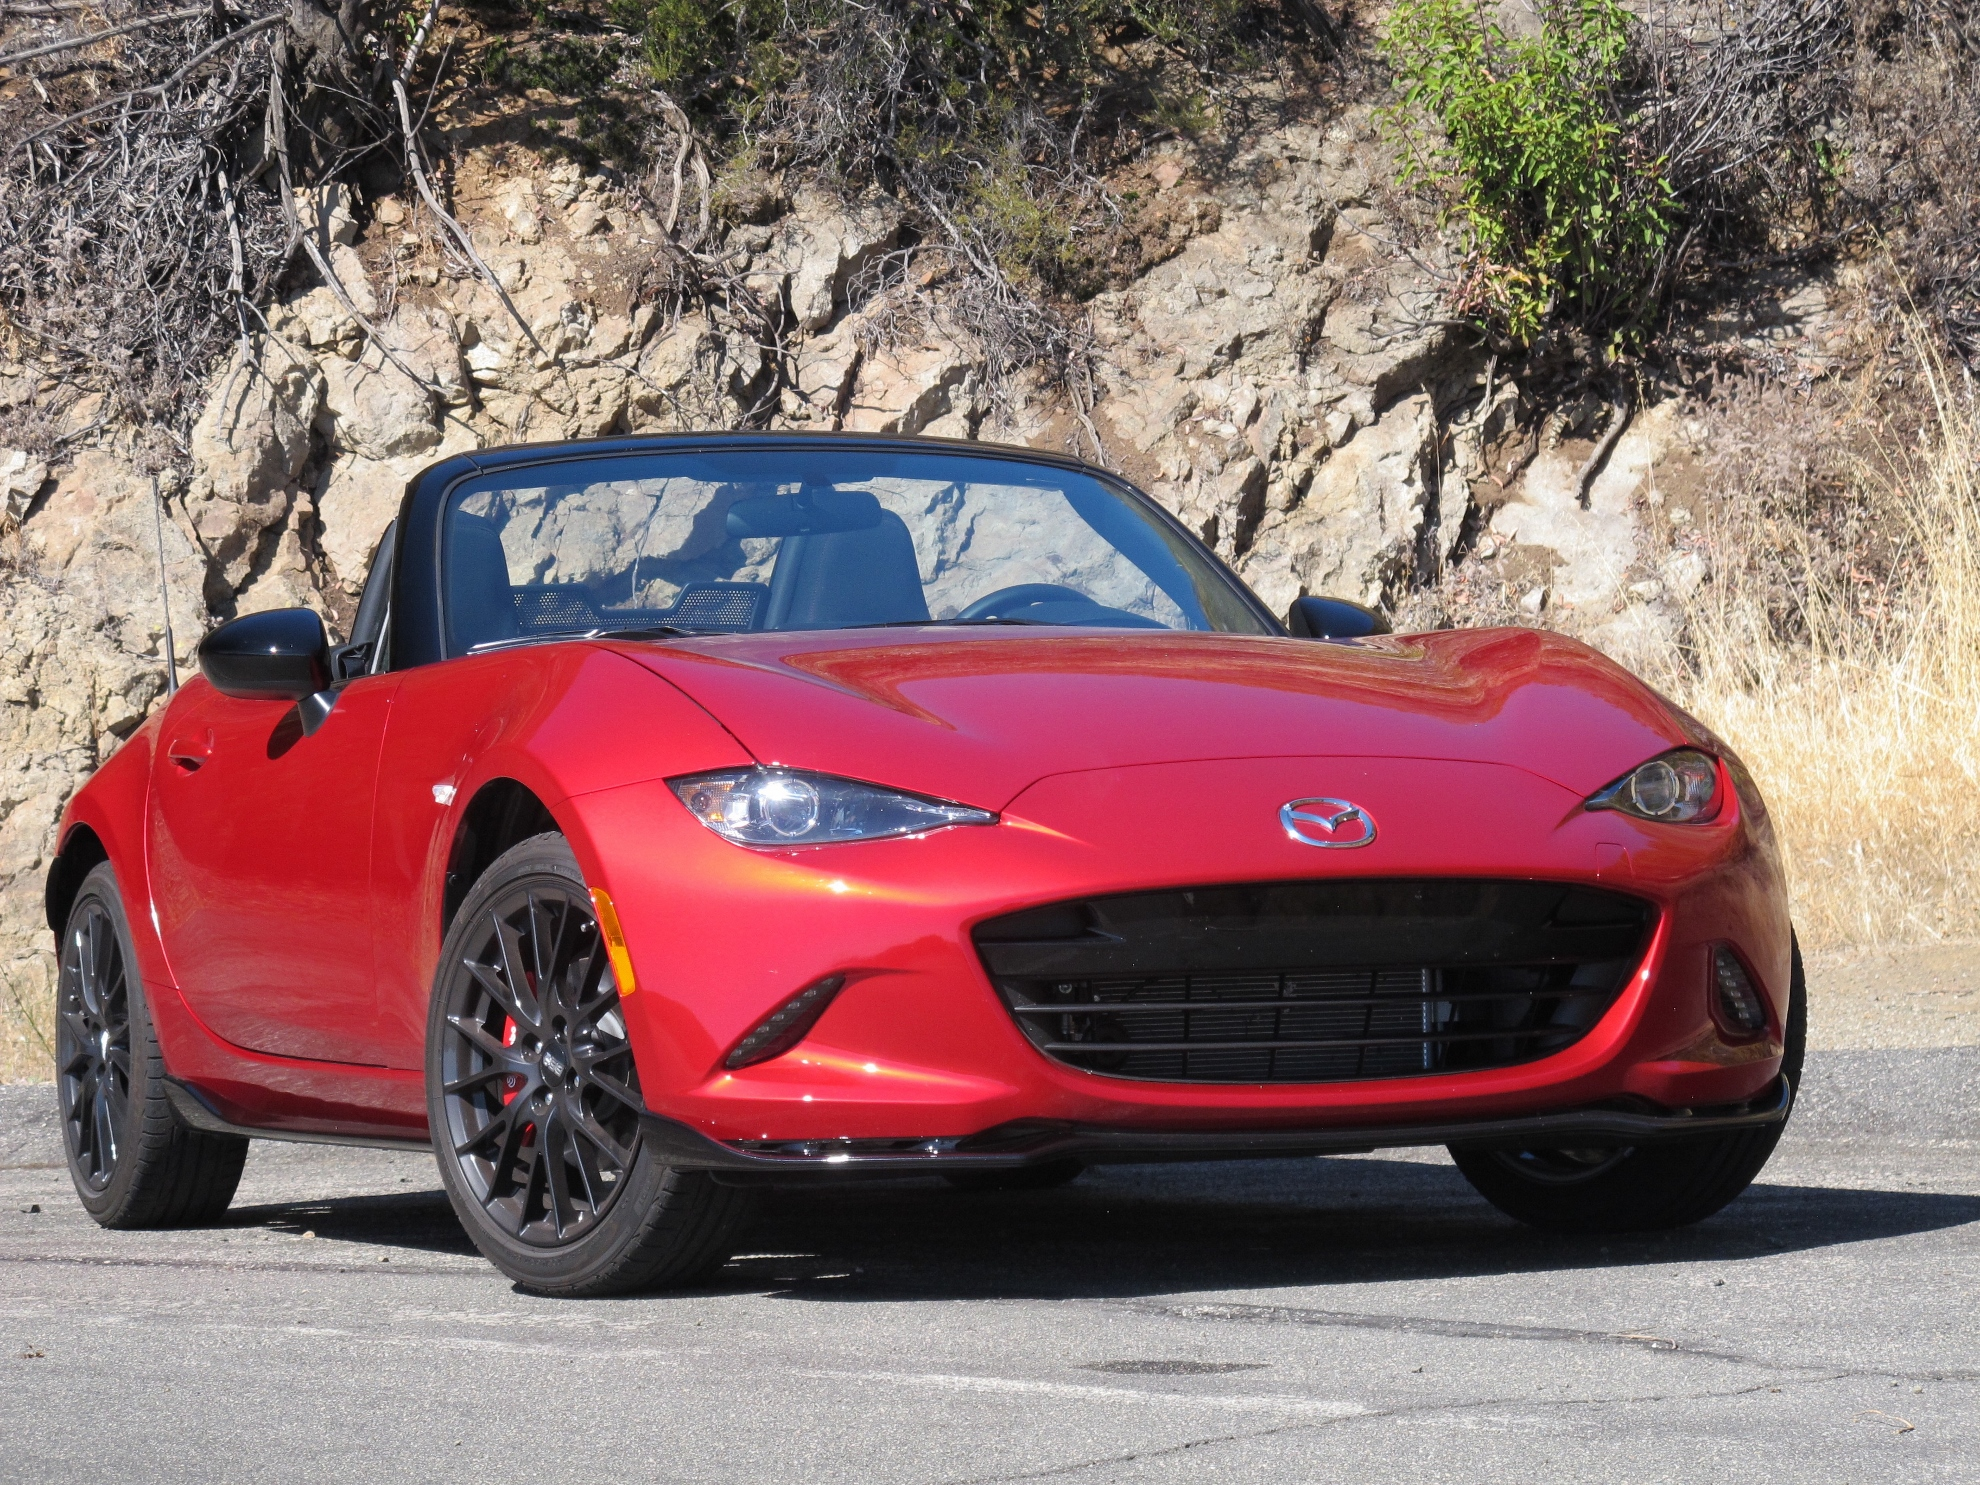 Armored Plug In Hybrid Mazda Miata Tesla Battery Life The Week Reverse Video